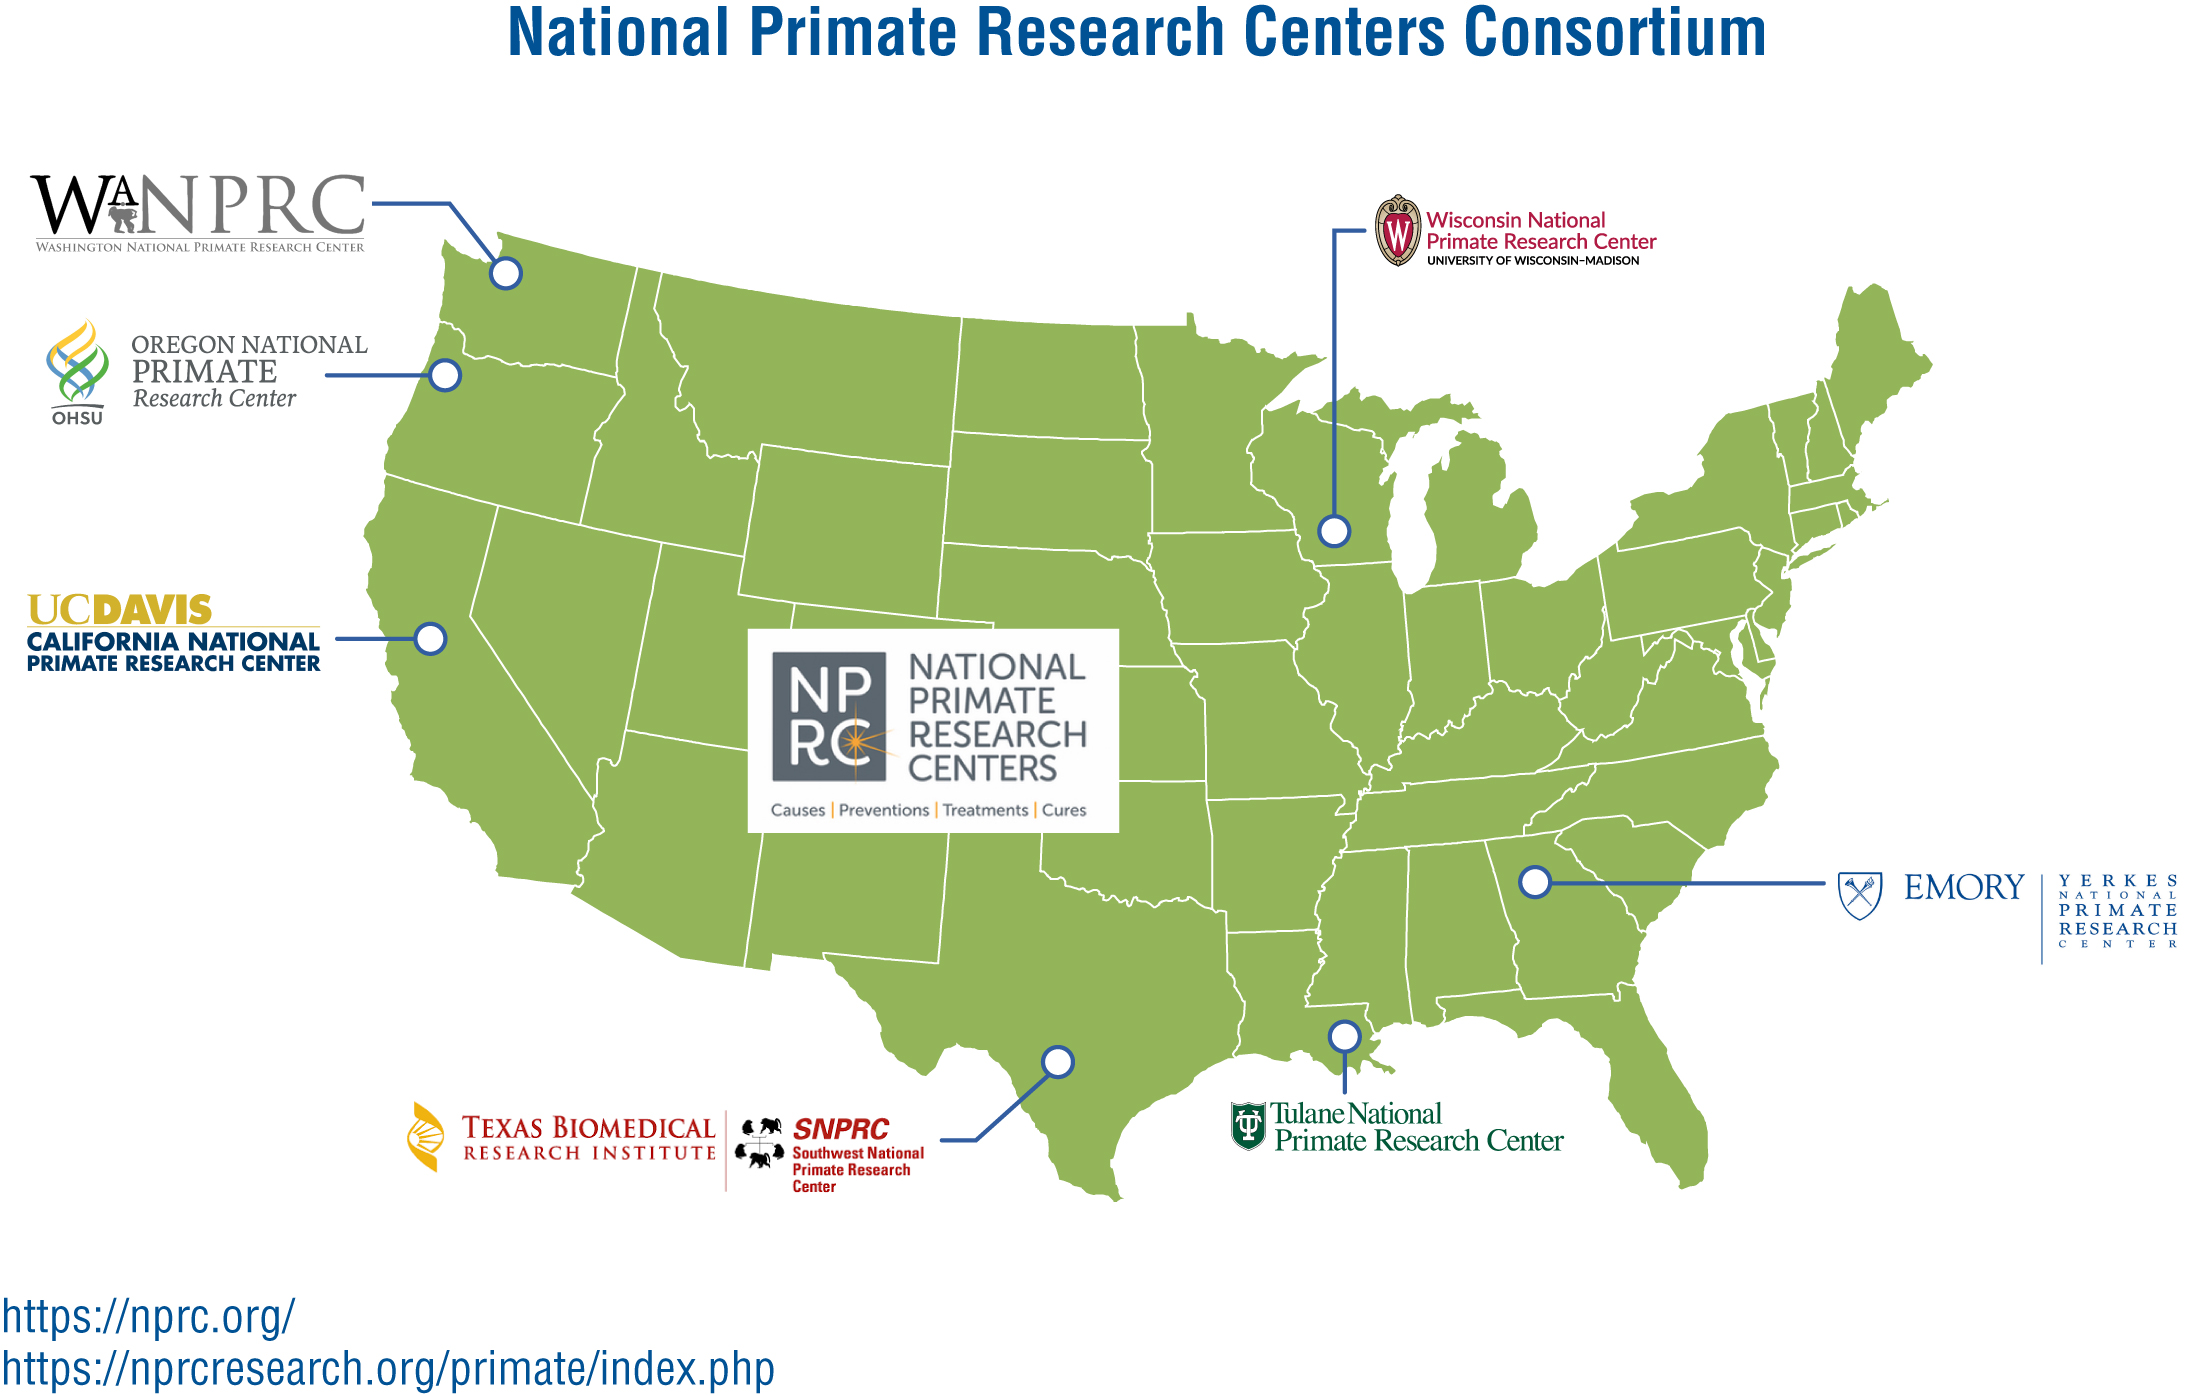 Map showing where the NPRCs are located in the US.